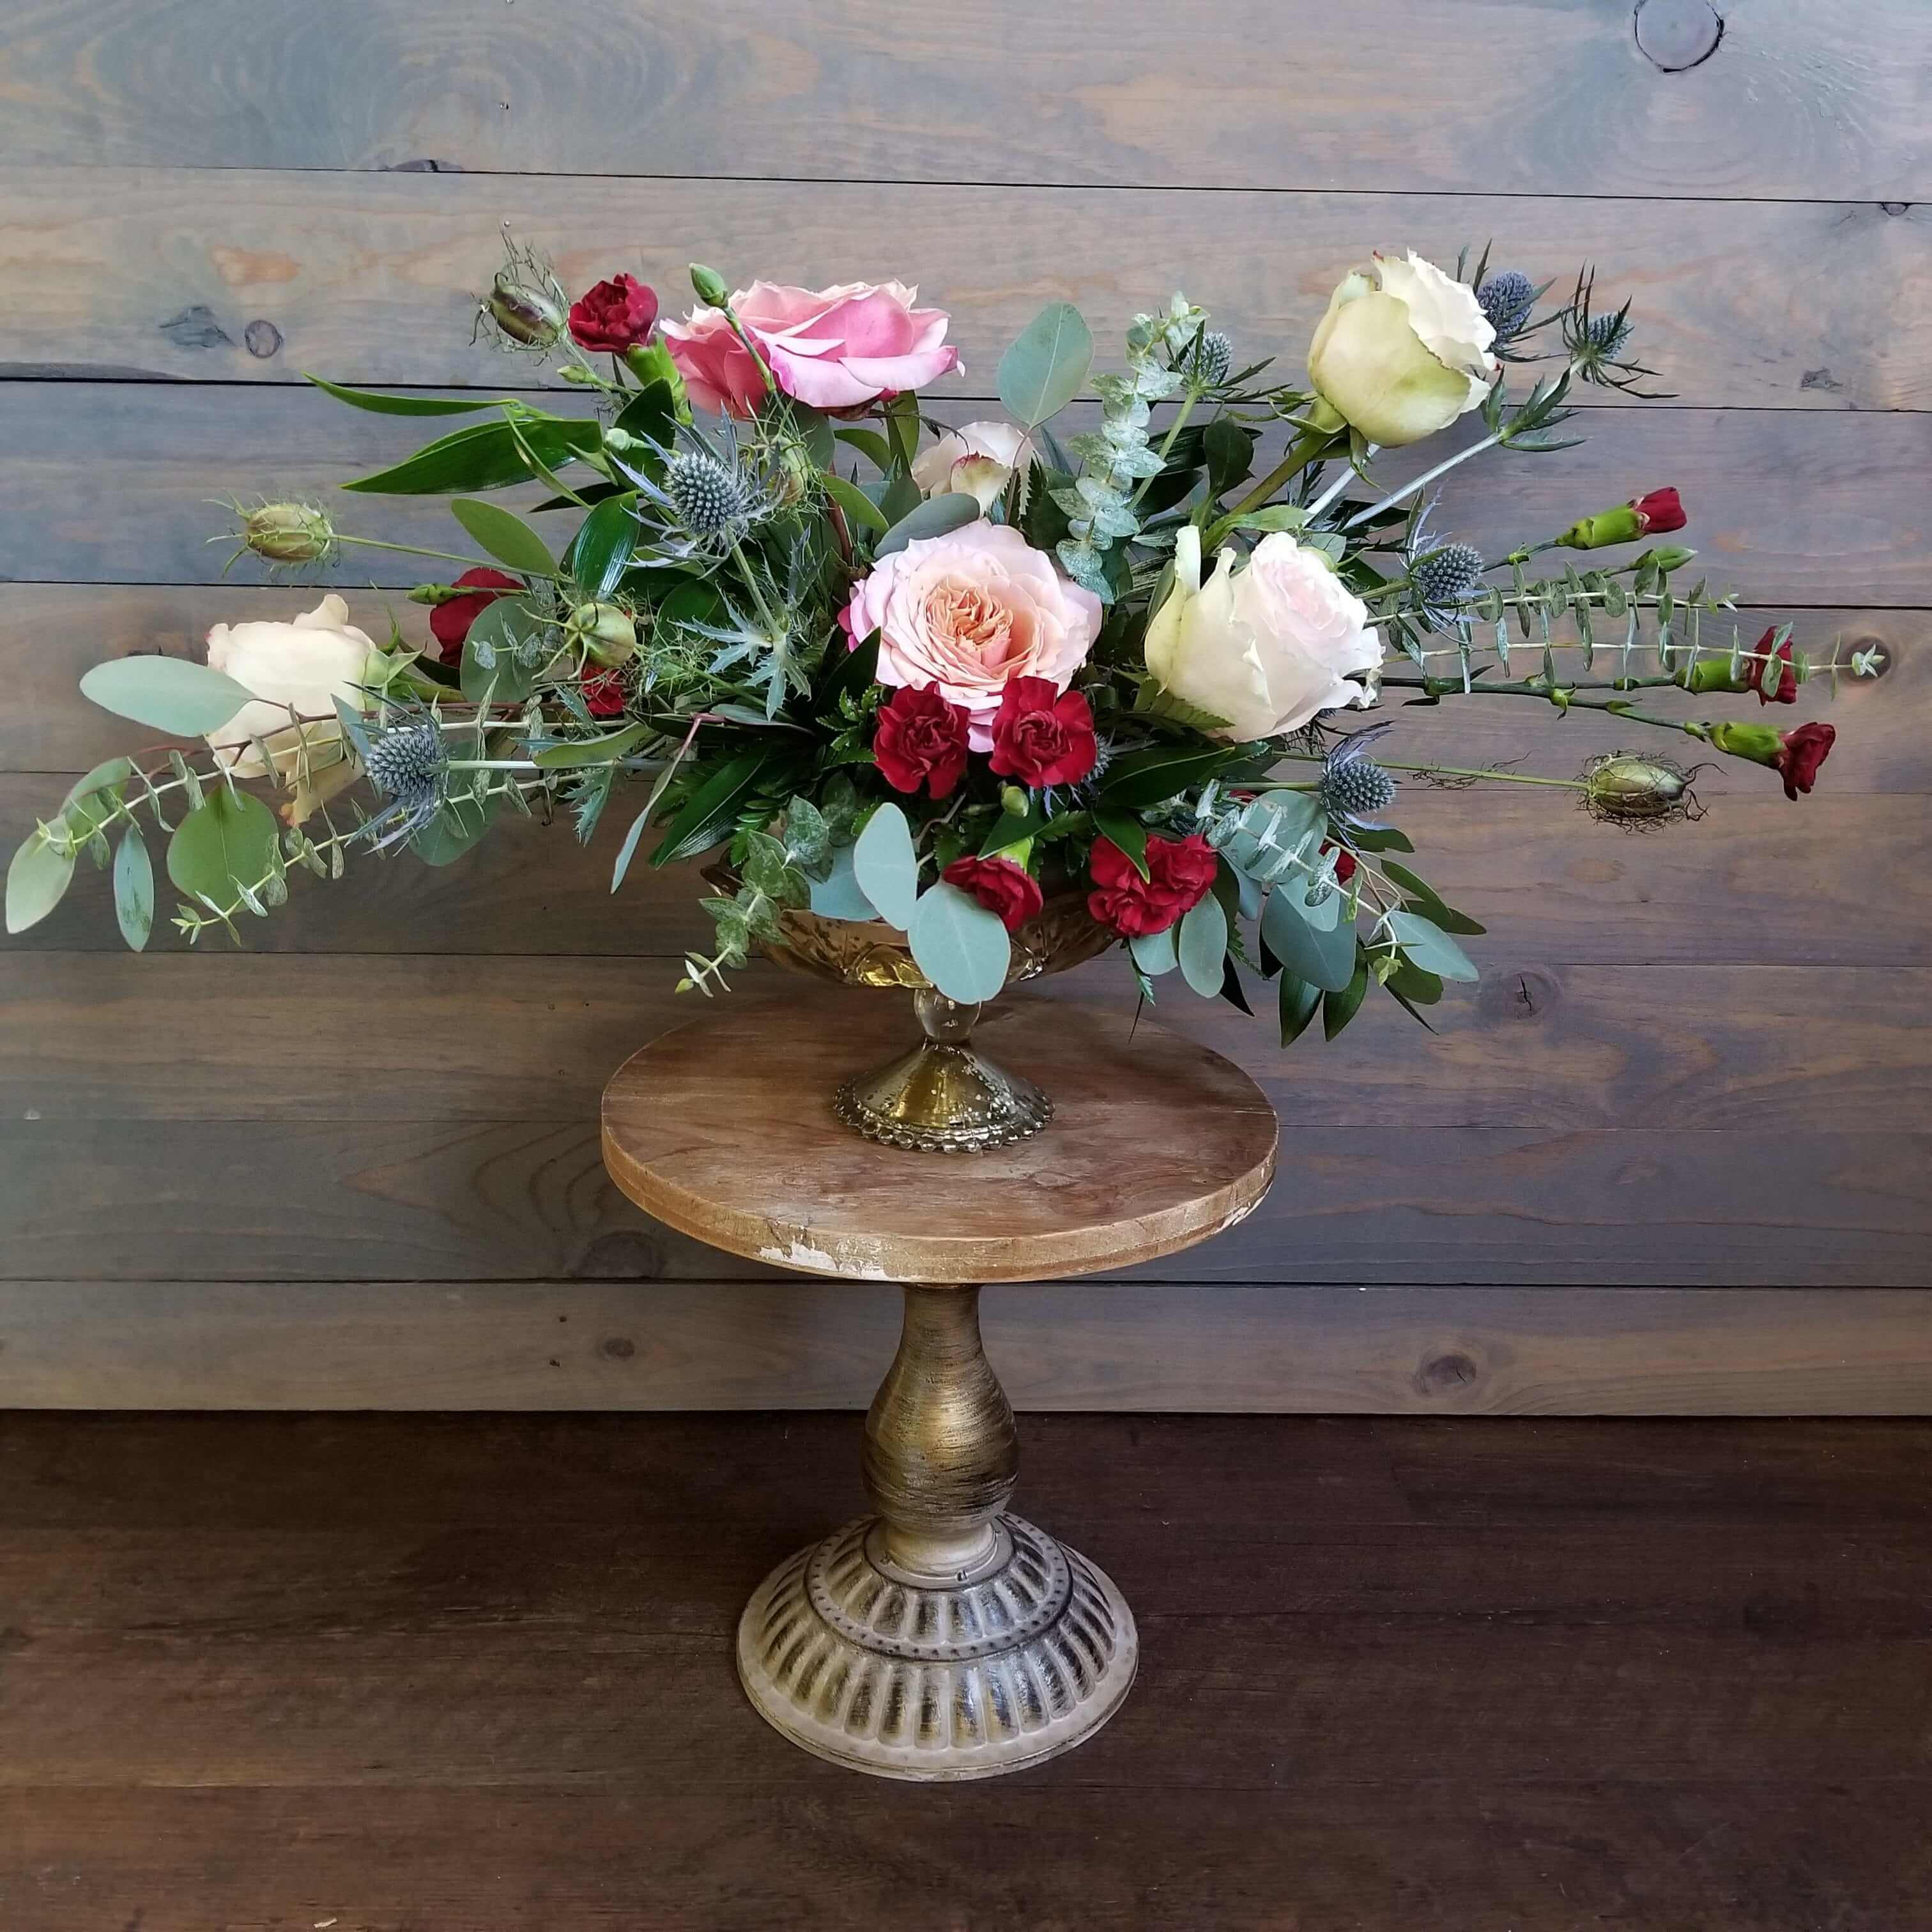 Naturalistic floral design red, white and pinks